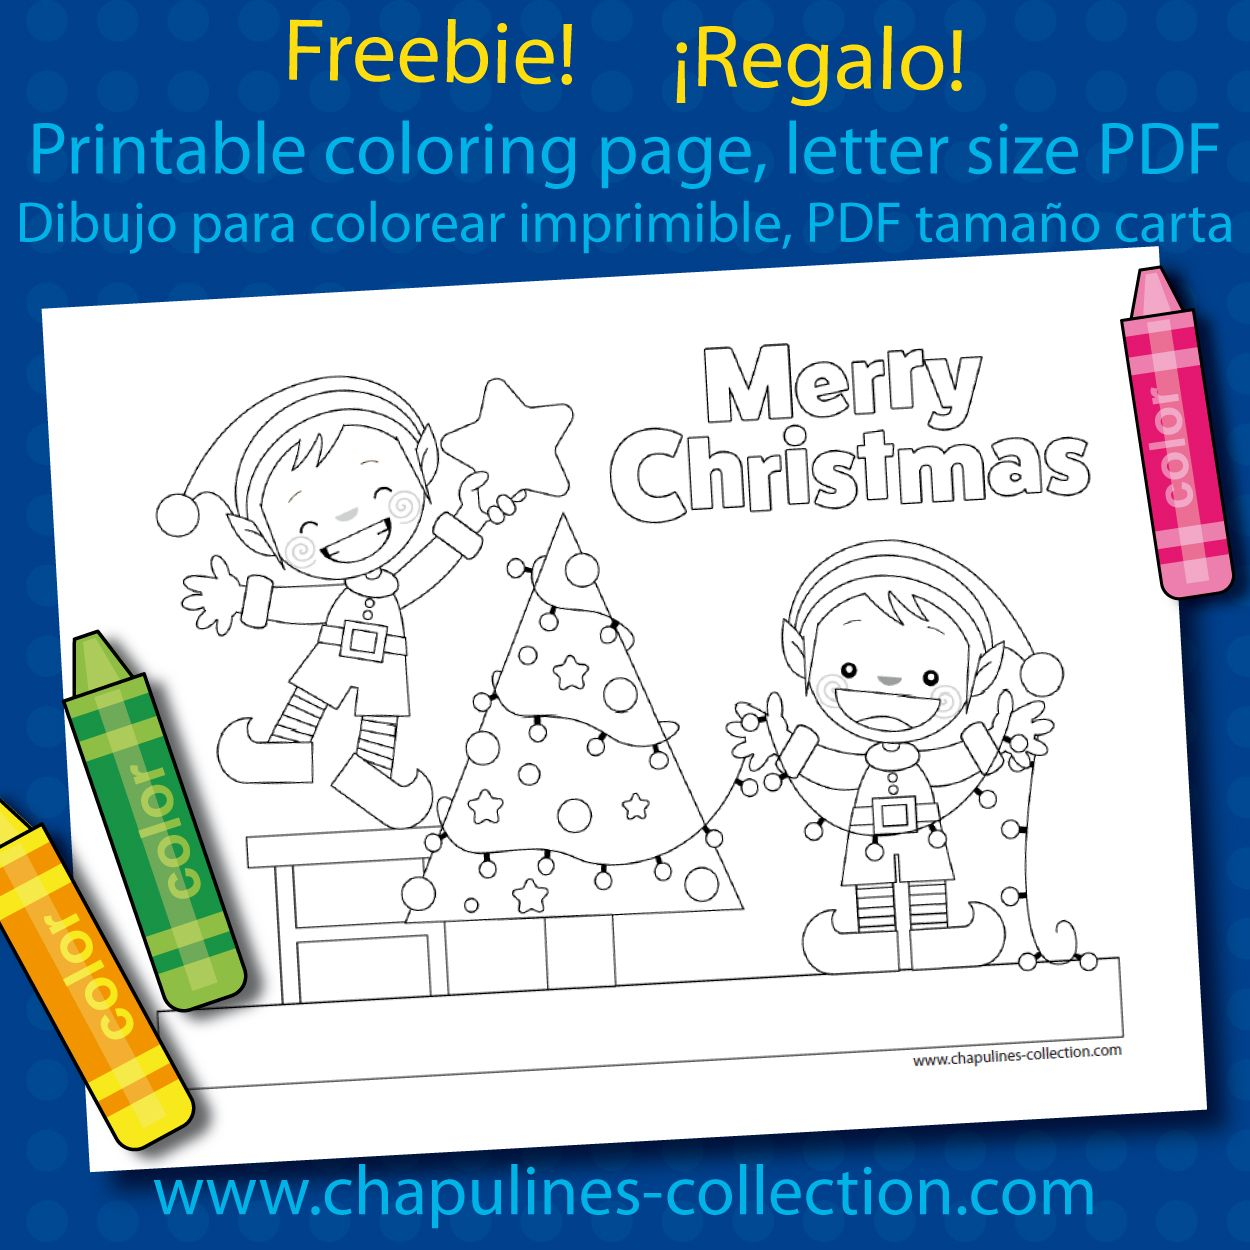 Chapulines Collection Freebie: Christmas coloring page! | DUENDES ...